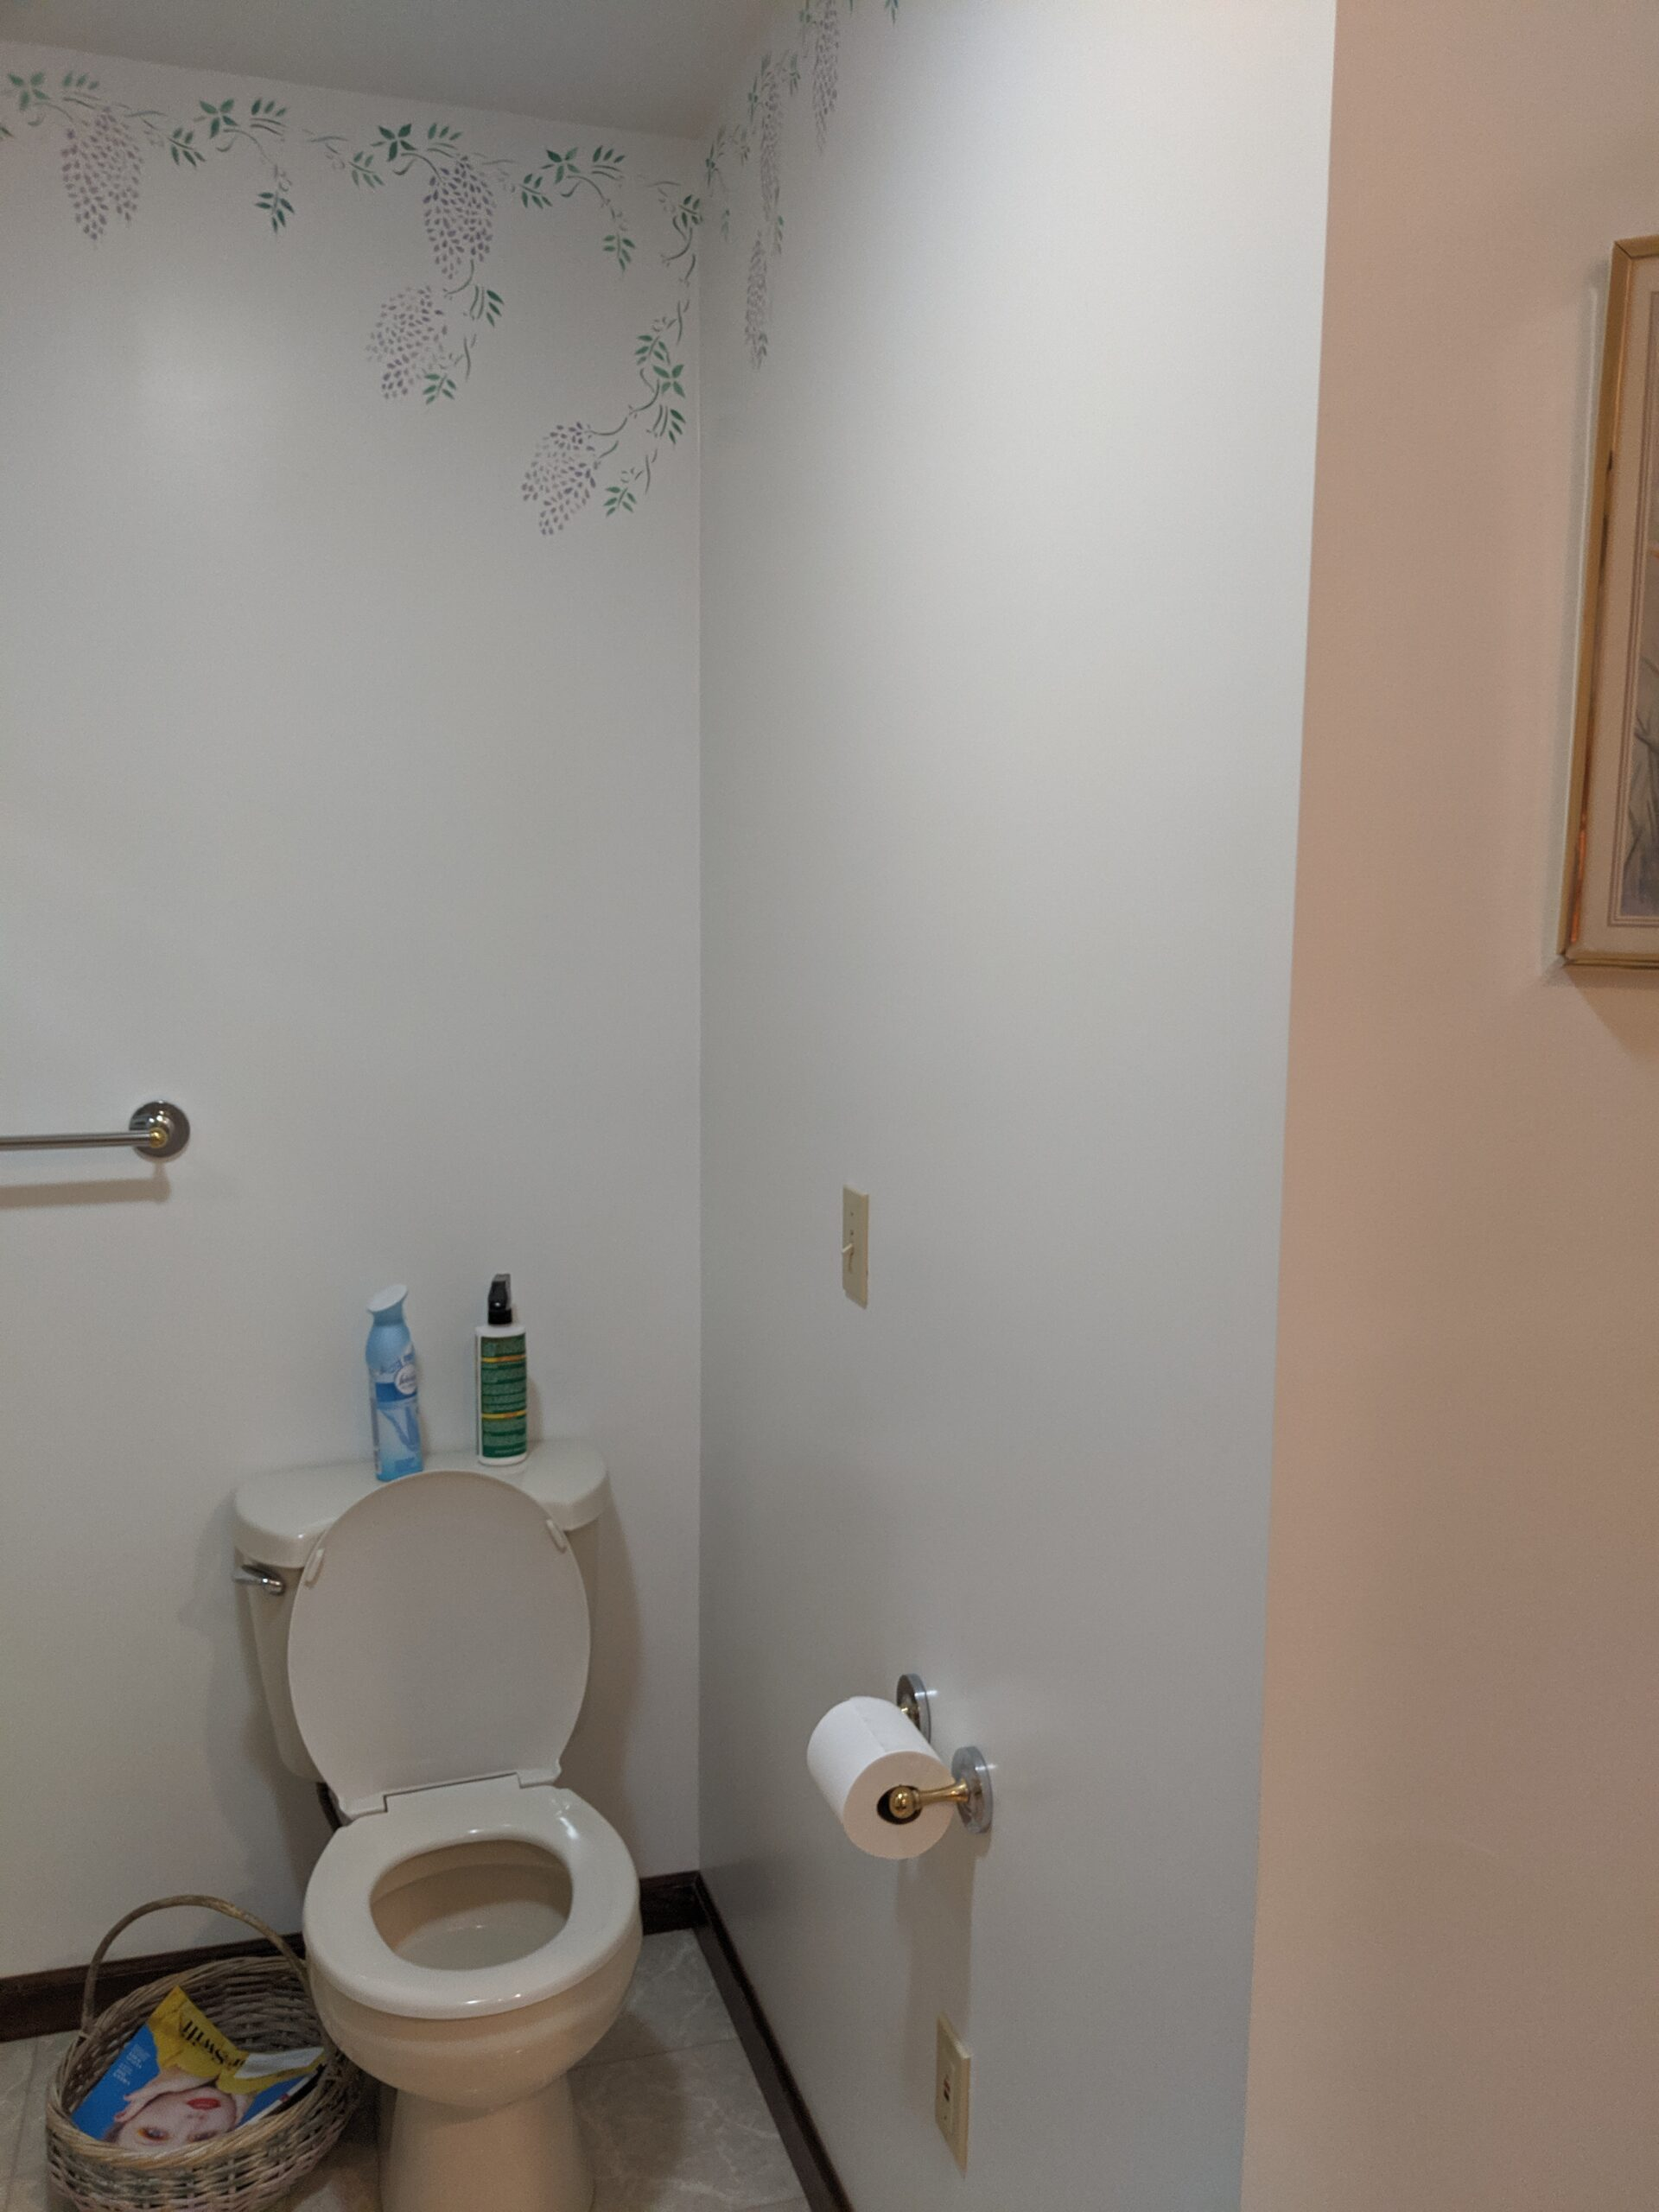 Showing the commode area before the renovation